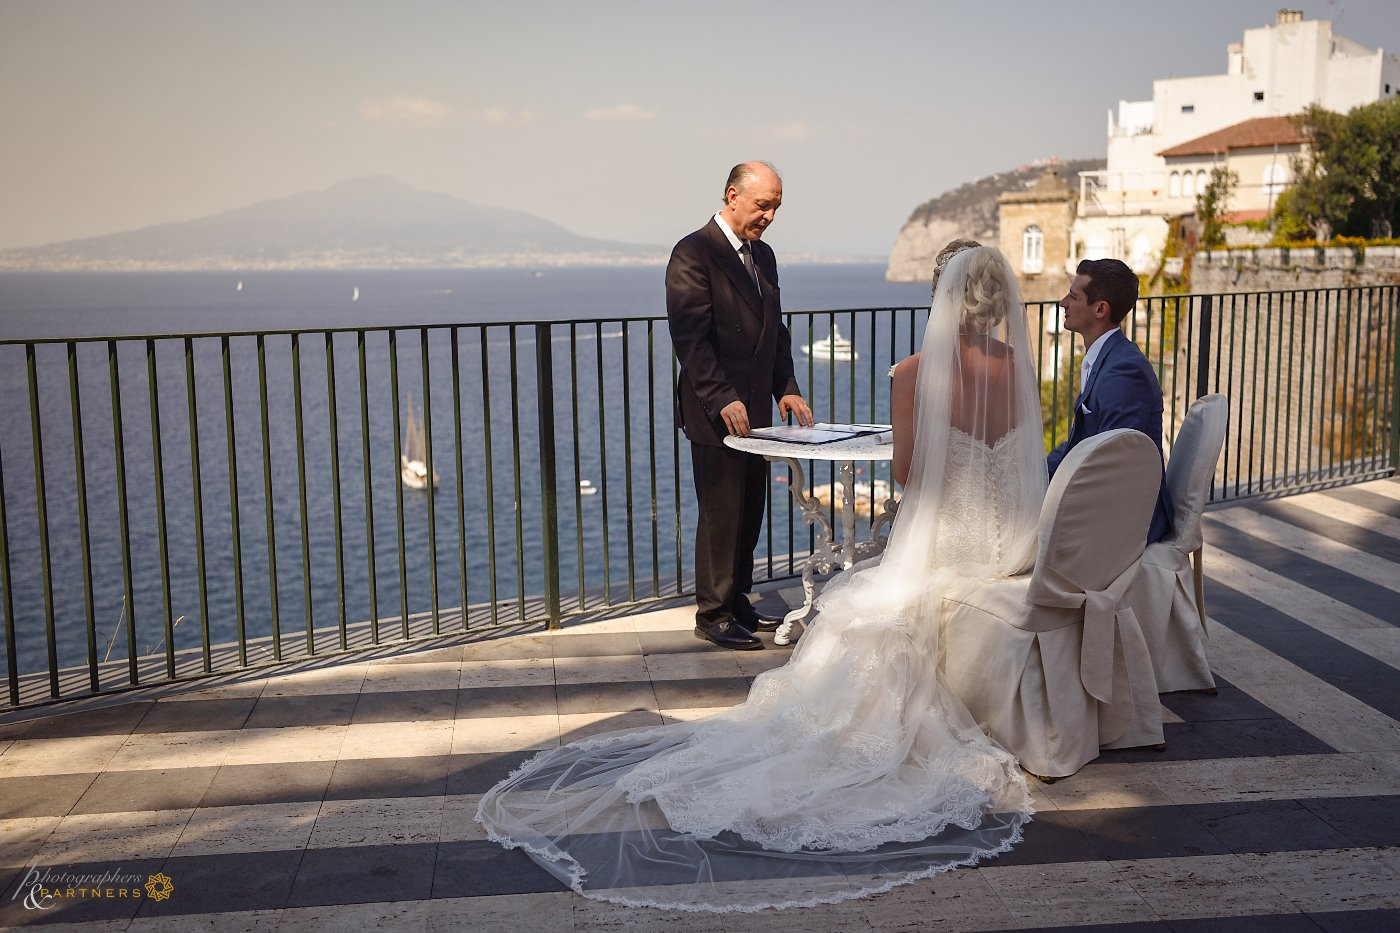 photographers_sorrento_09.jpg